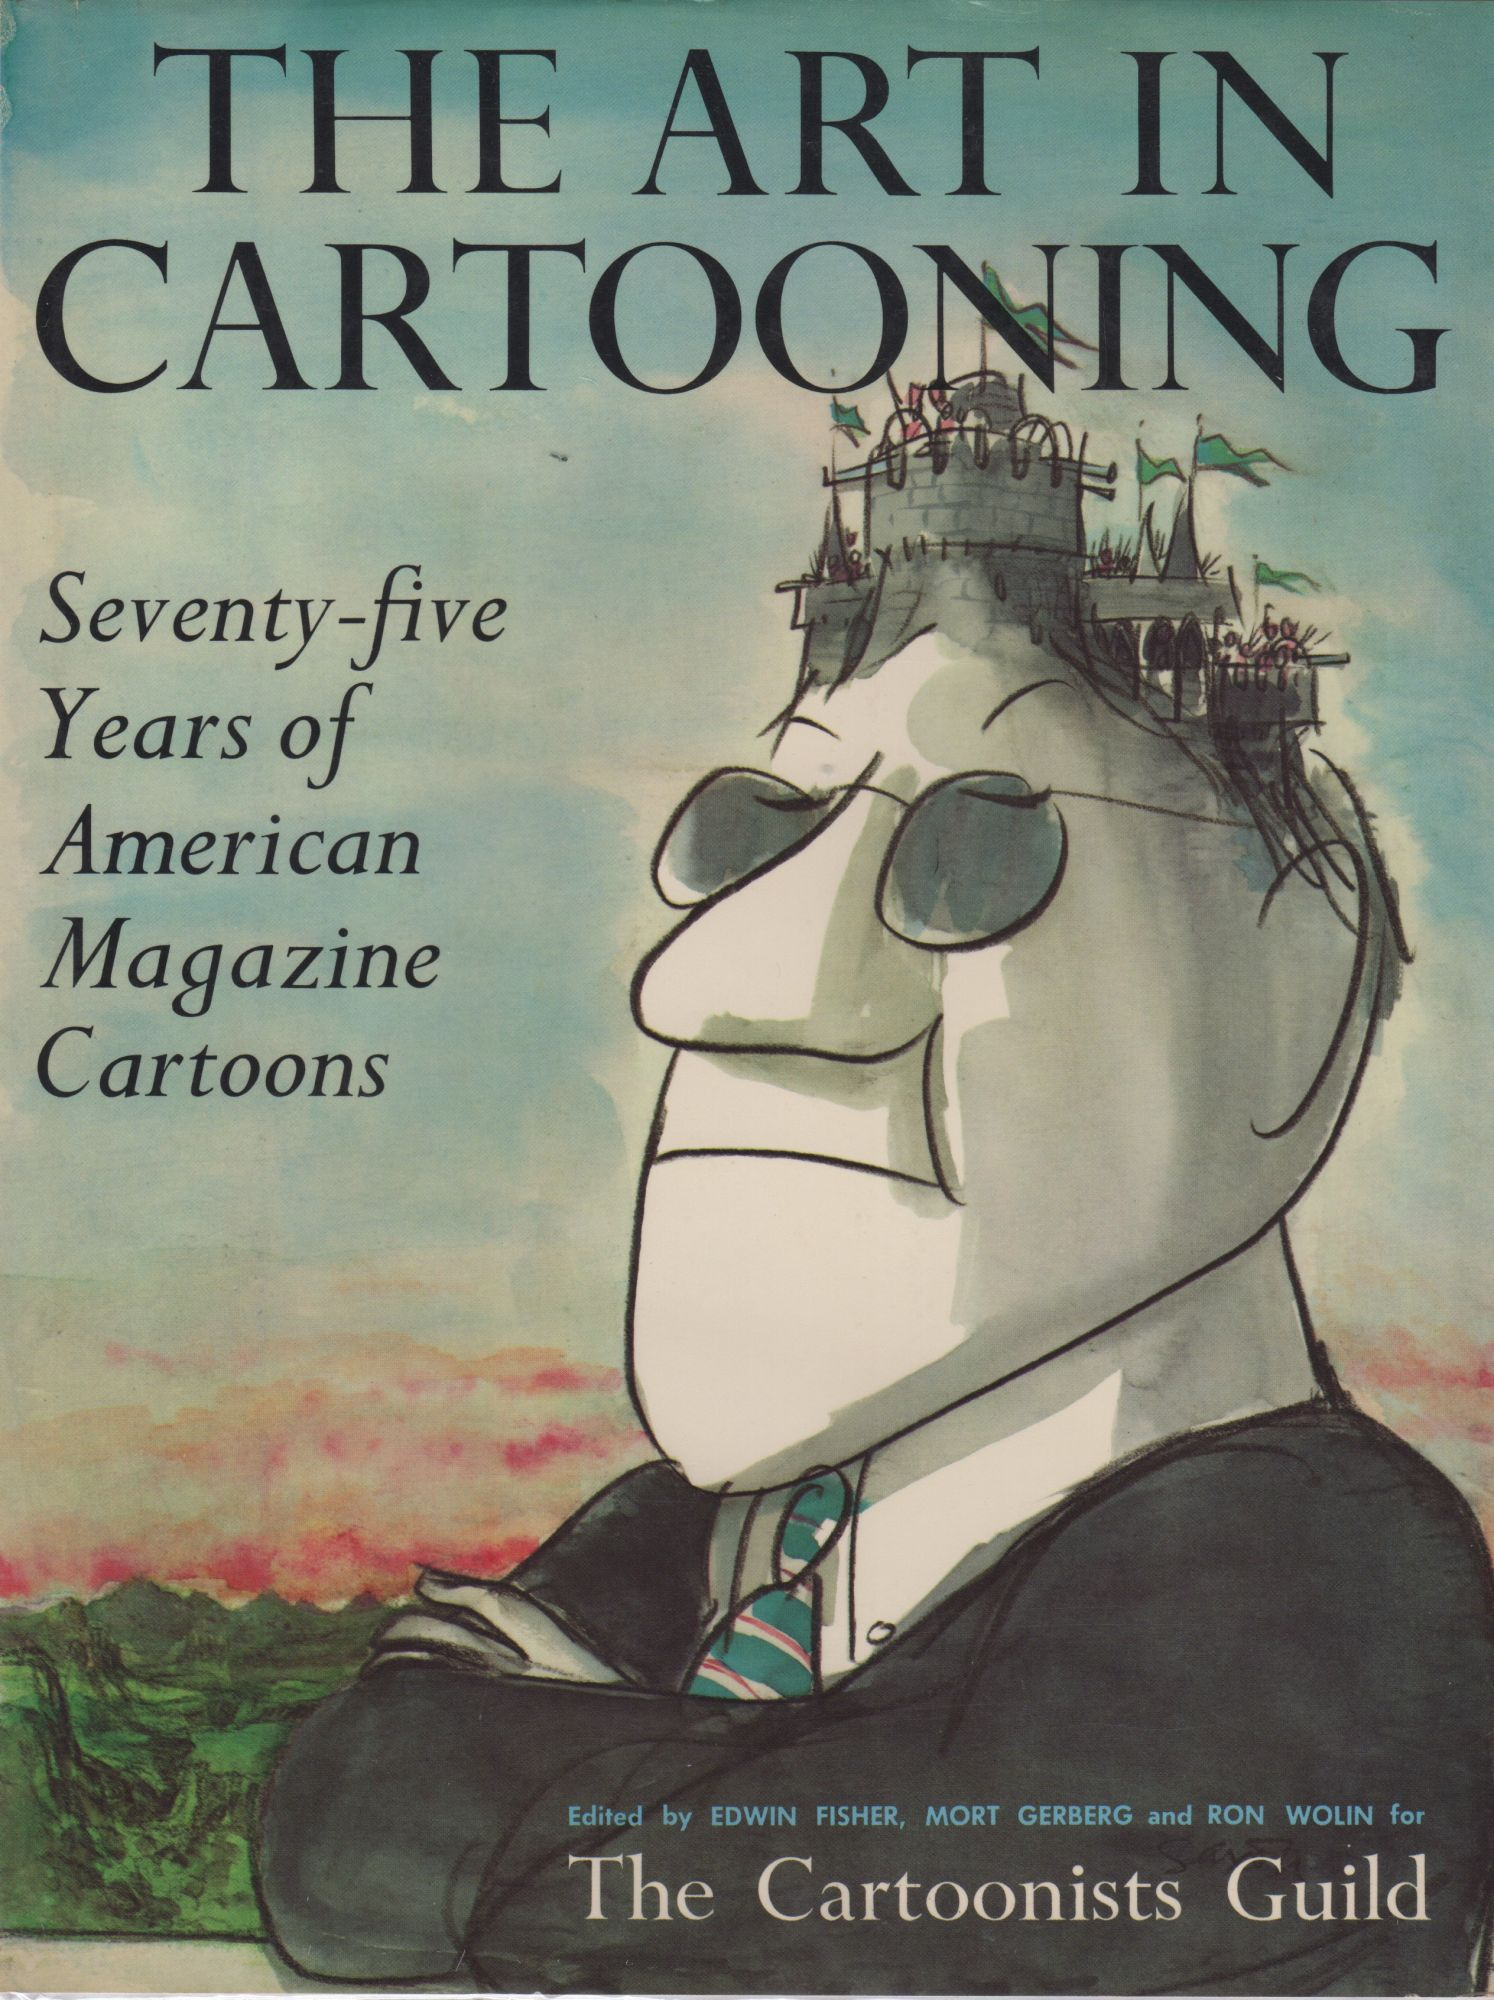 THE ART IN CARTOONING: SEVENTY-FIVE YEARS OF AMERICAN MAGAZINE CARTOONS [SIGNED AND DOODLED BY VARIOUS CARTOONISTS]. Edwin Fisher, Mort Gerberg, Ron Wolin.